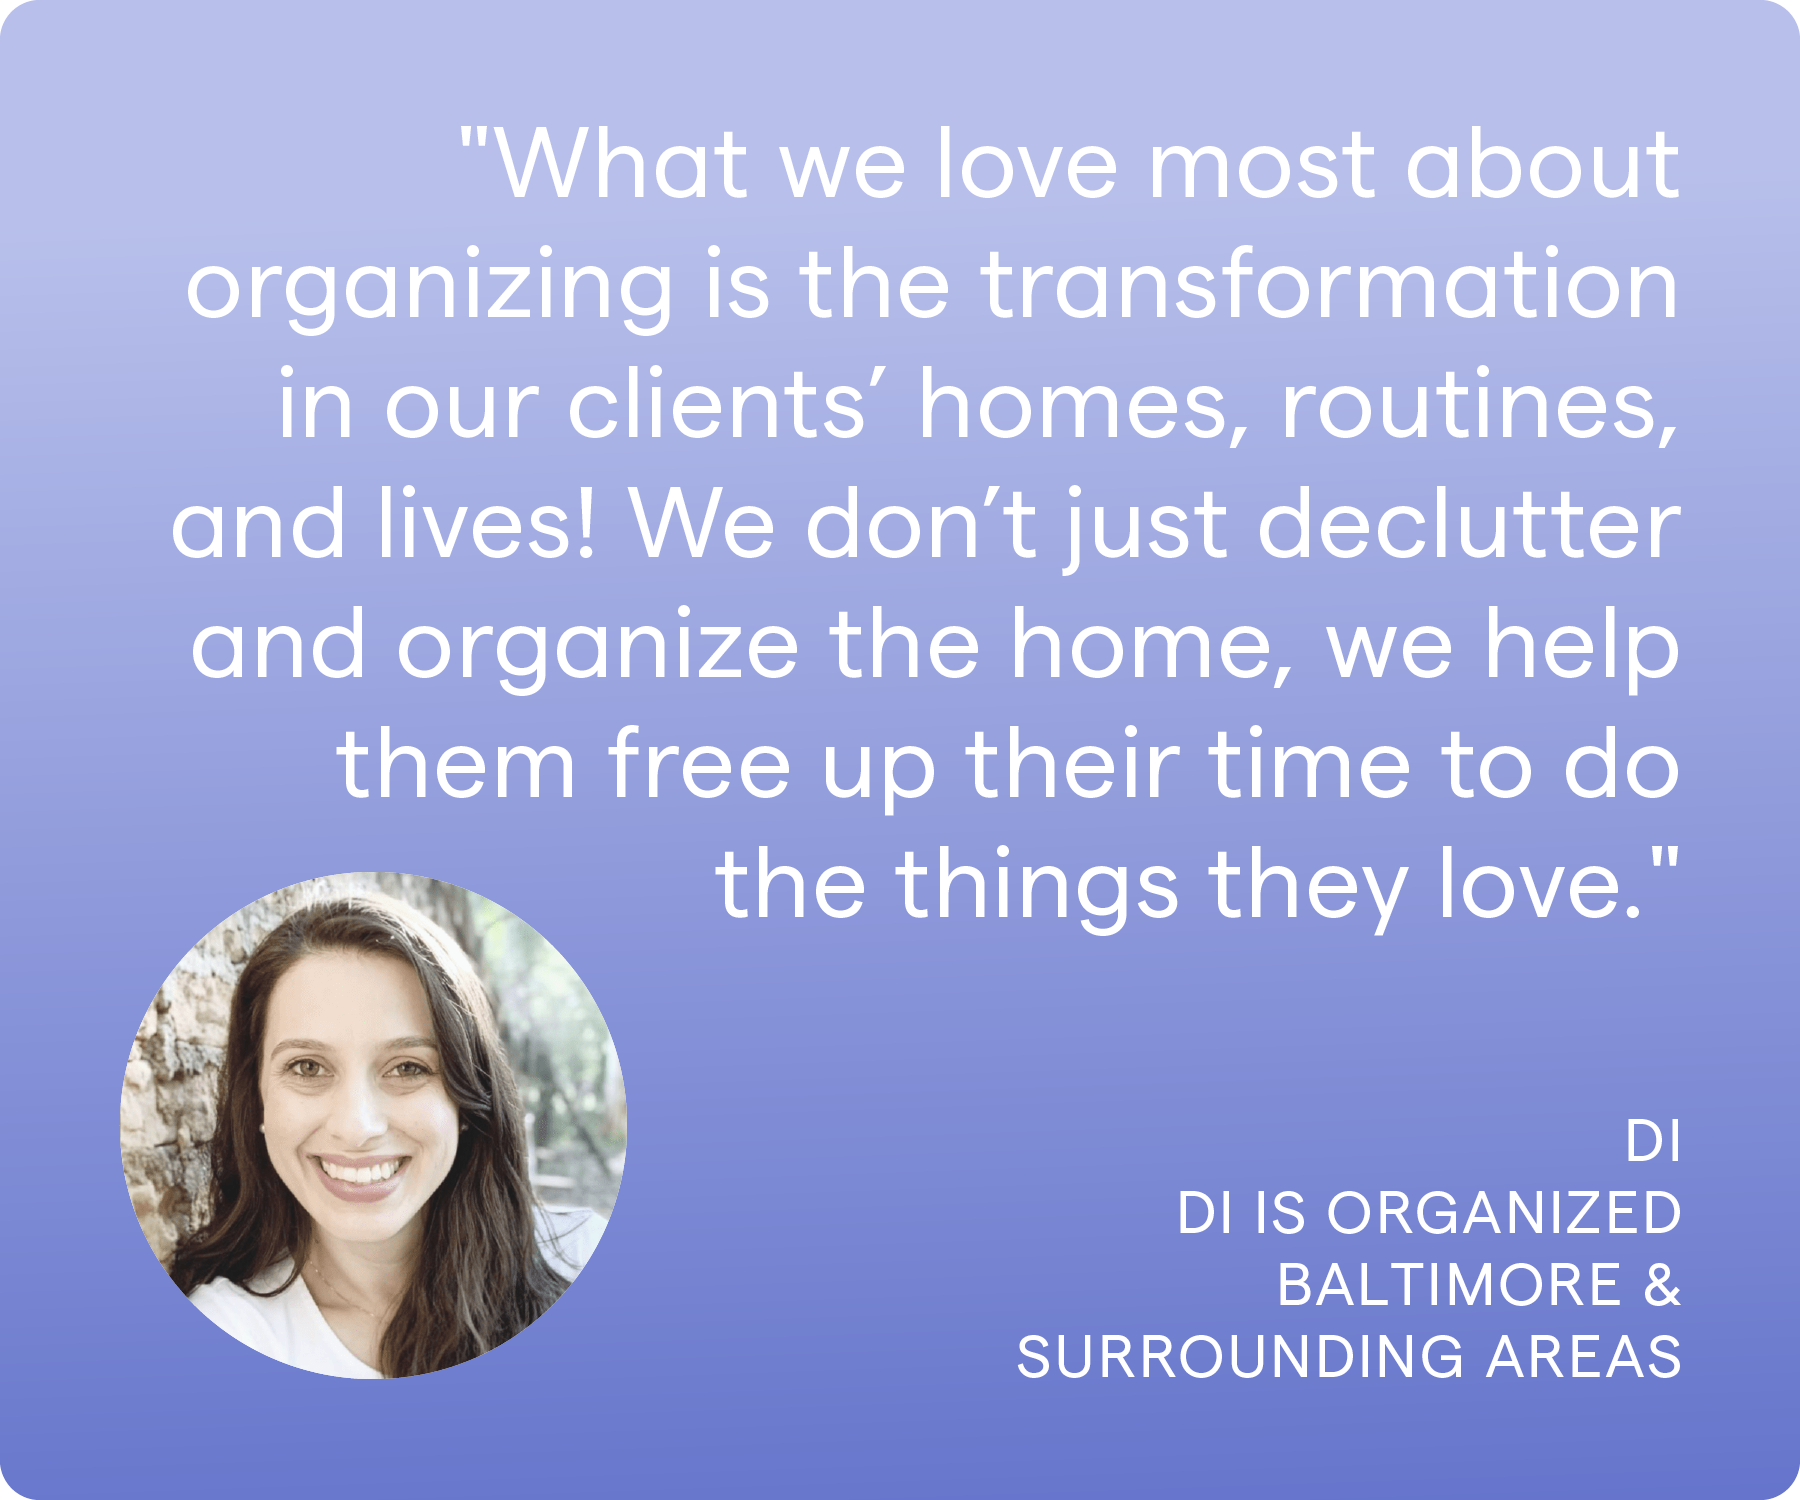 'What we love most about organizing is the transformation in our clients' homes, routines, and lives! We don't just declutter and organize the home, we help them free up their time to do the things they love.' Di, Di is Organized, Baltimore & Surrounding Areas